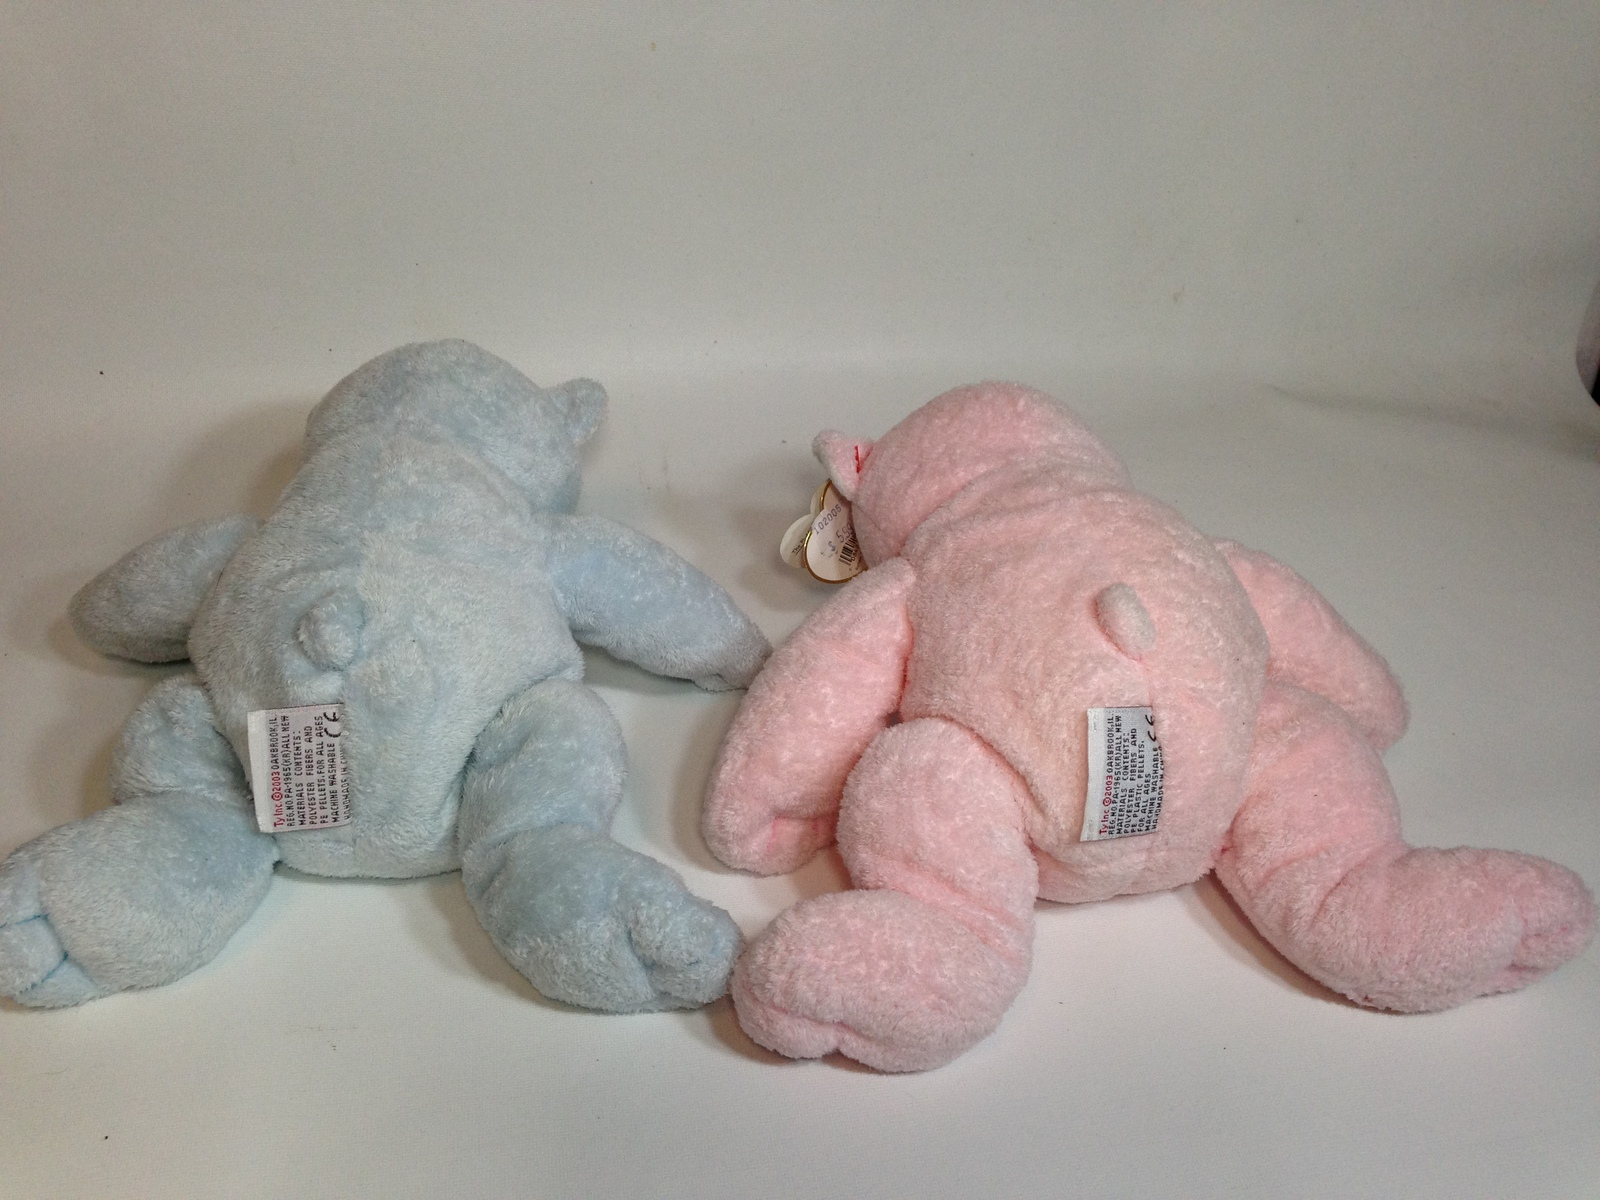 d15ae0c3008 Ty Pluffies Pink Pudder   Blue Tinker Bear and 22 similar items